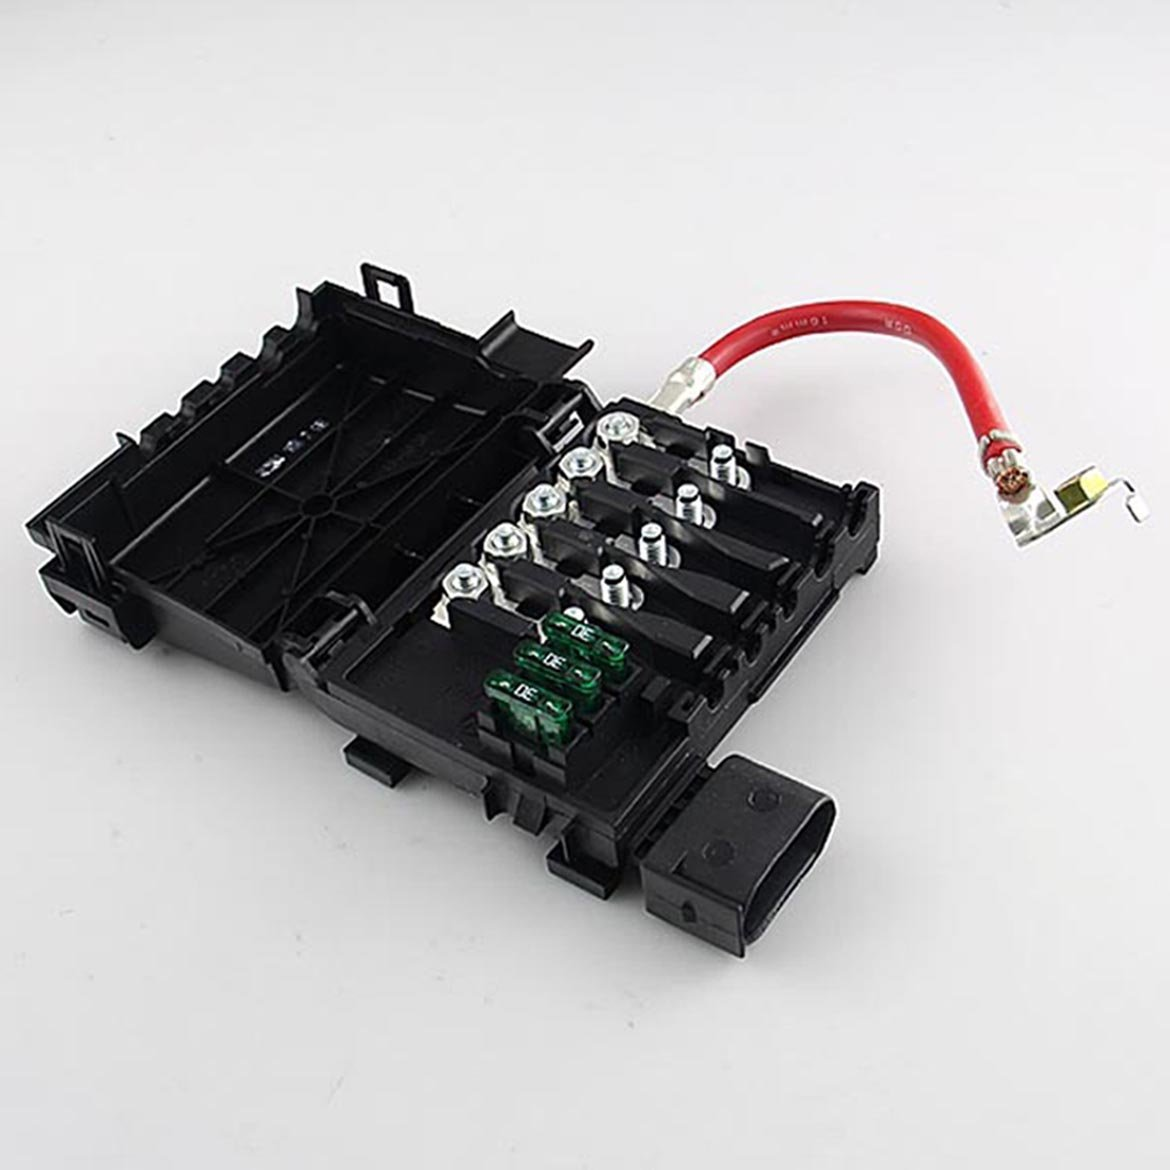 615IaVsU0KL._SL1170_ amazon com baifm oem fuse box battery terminal fit for vw jetta  at bayanpartner.co